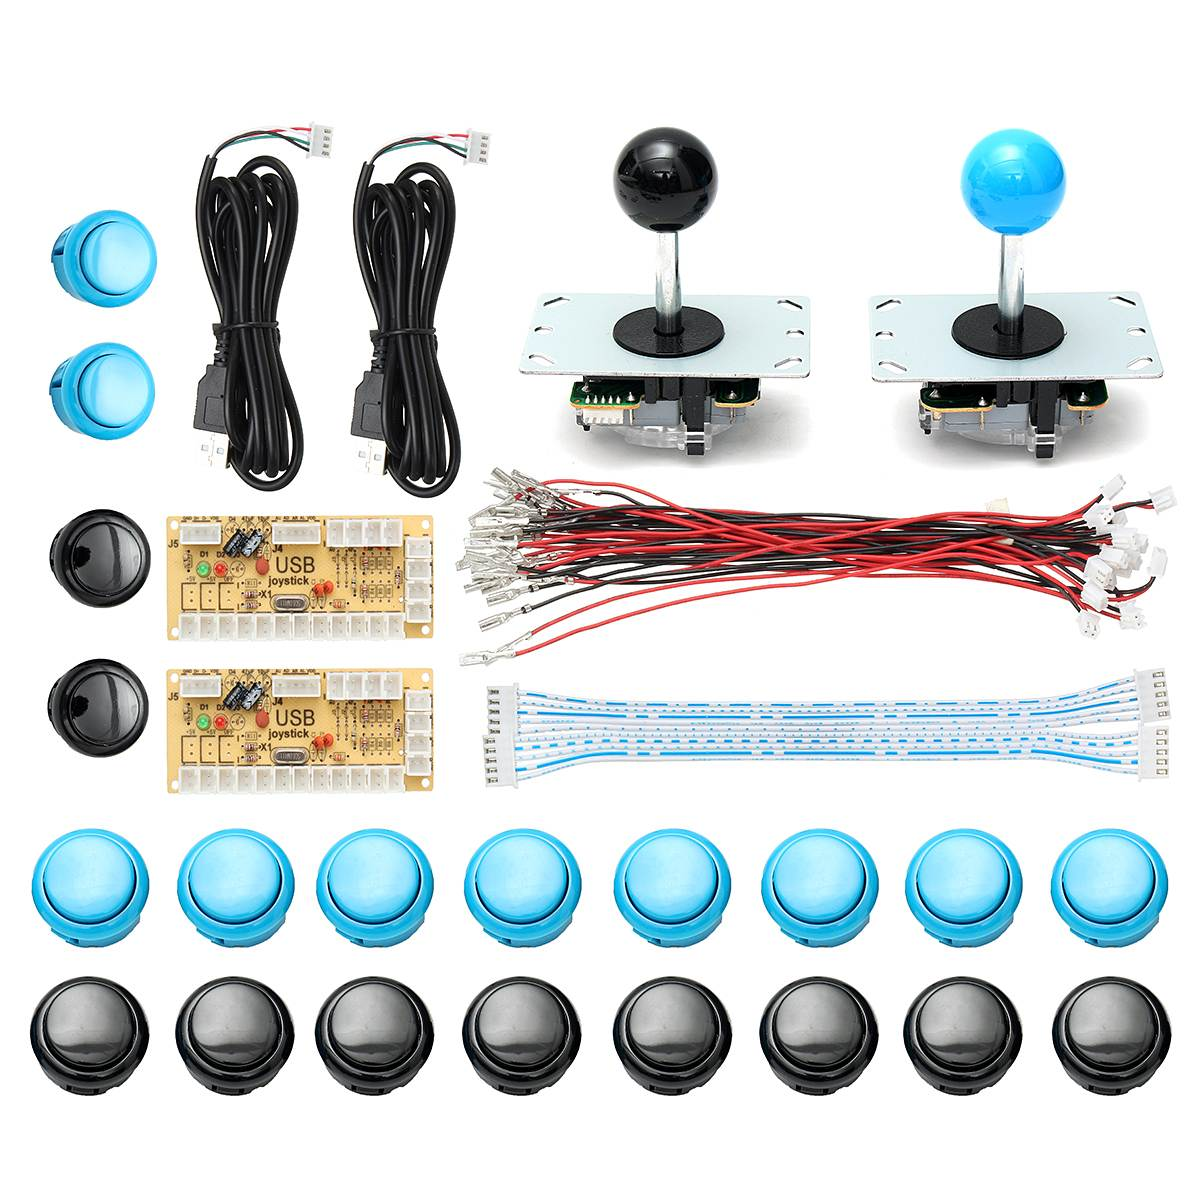 цена на Arcade Game Machine DIY Kits USB Encoder Controller PC Joystick With 20 Push Button + Joystick + Cable Arcade Joystick Kit